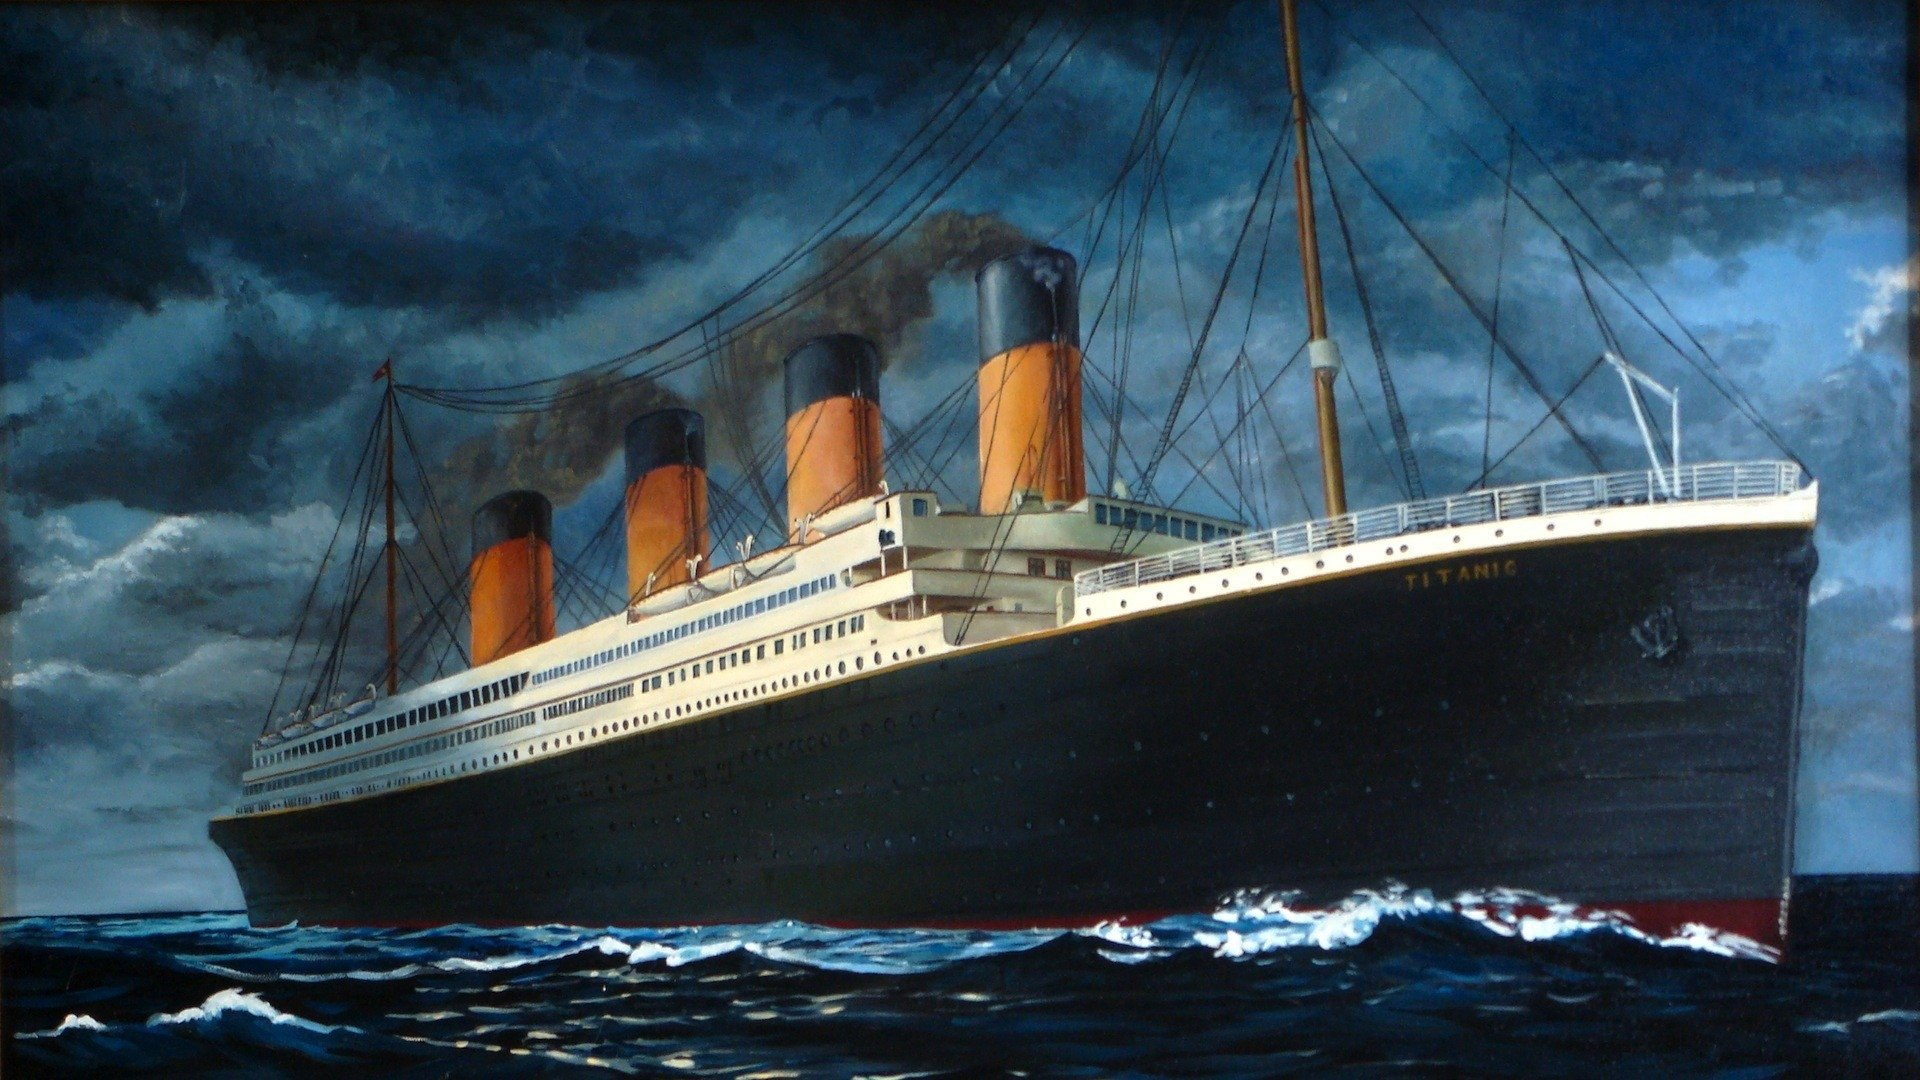 Titanic Wallpaper Free